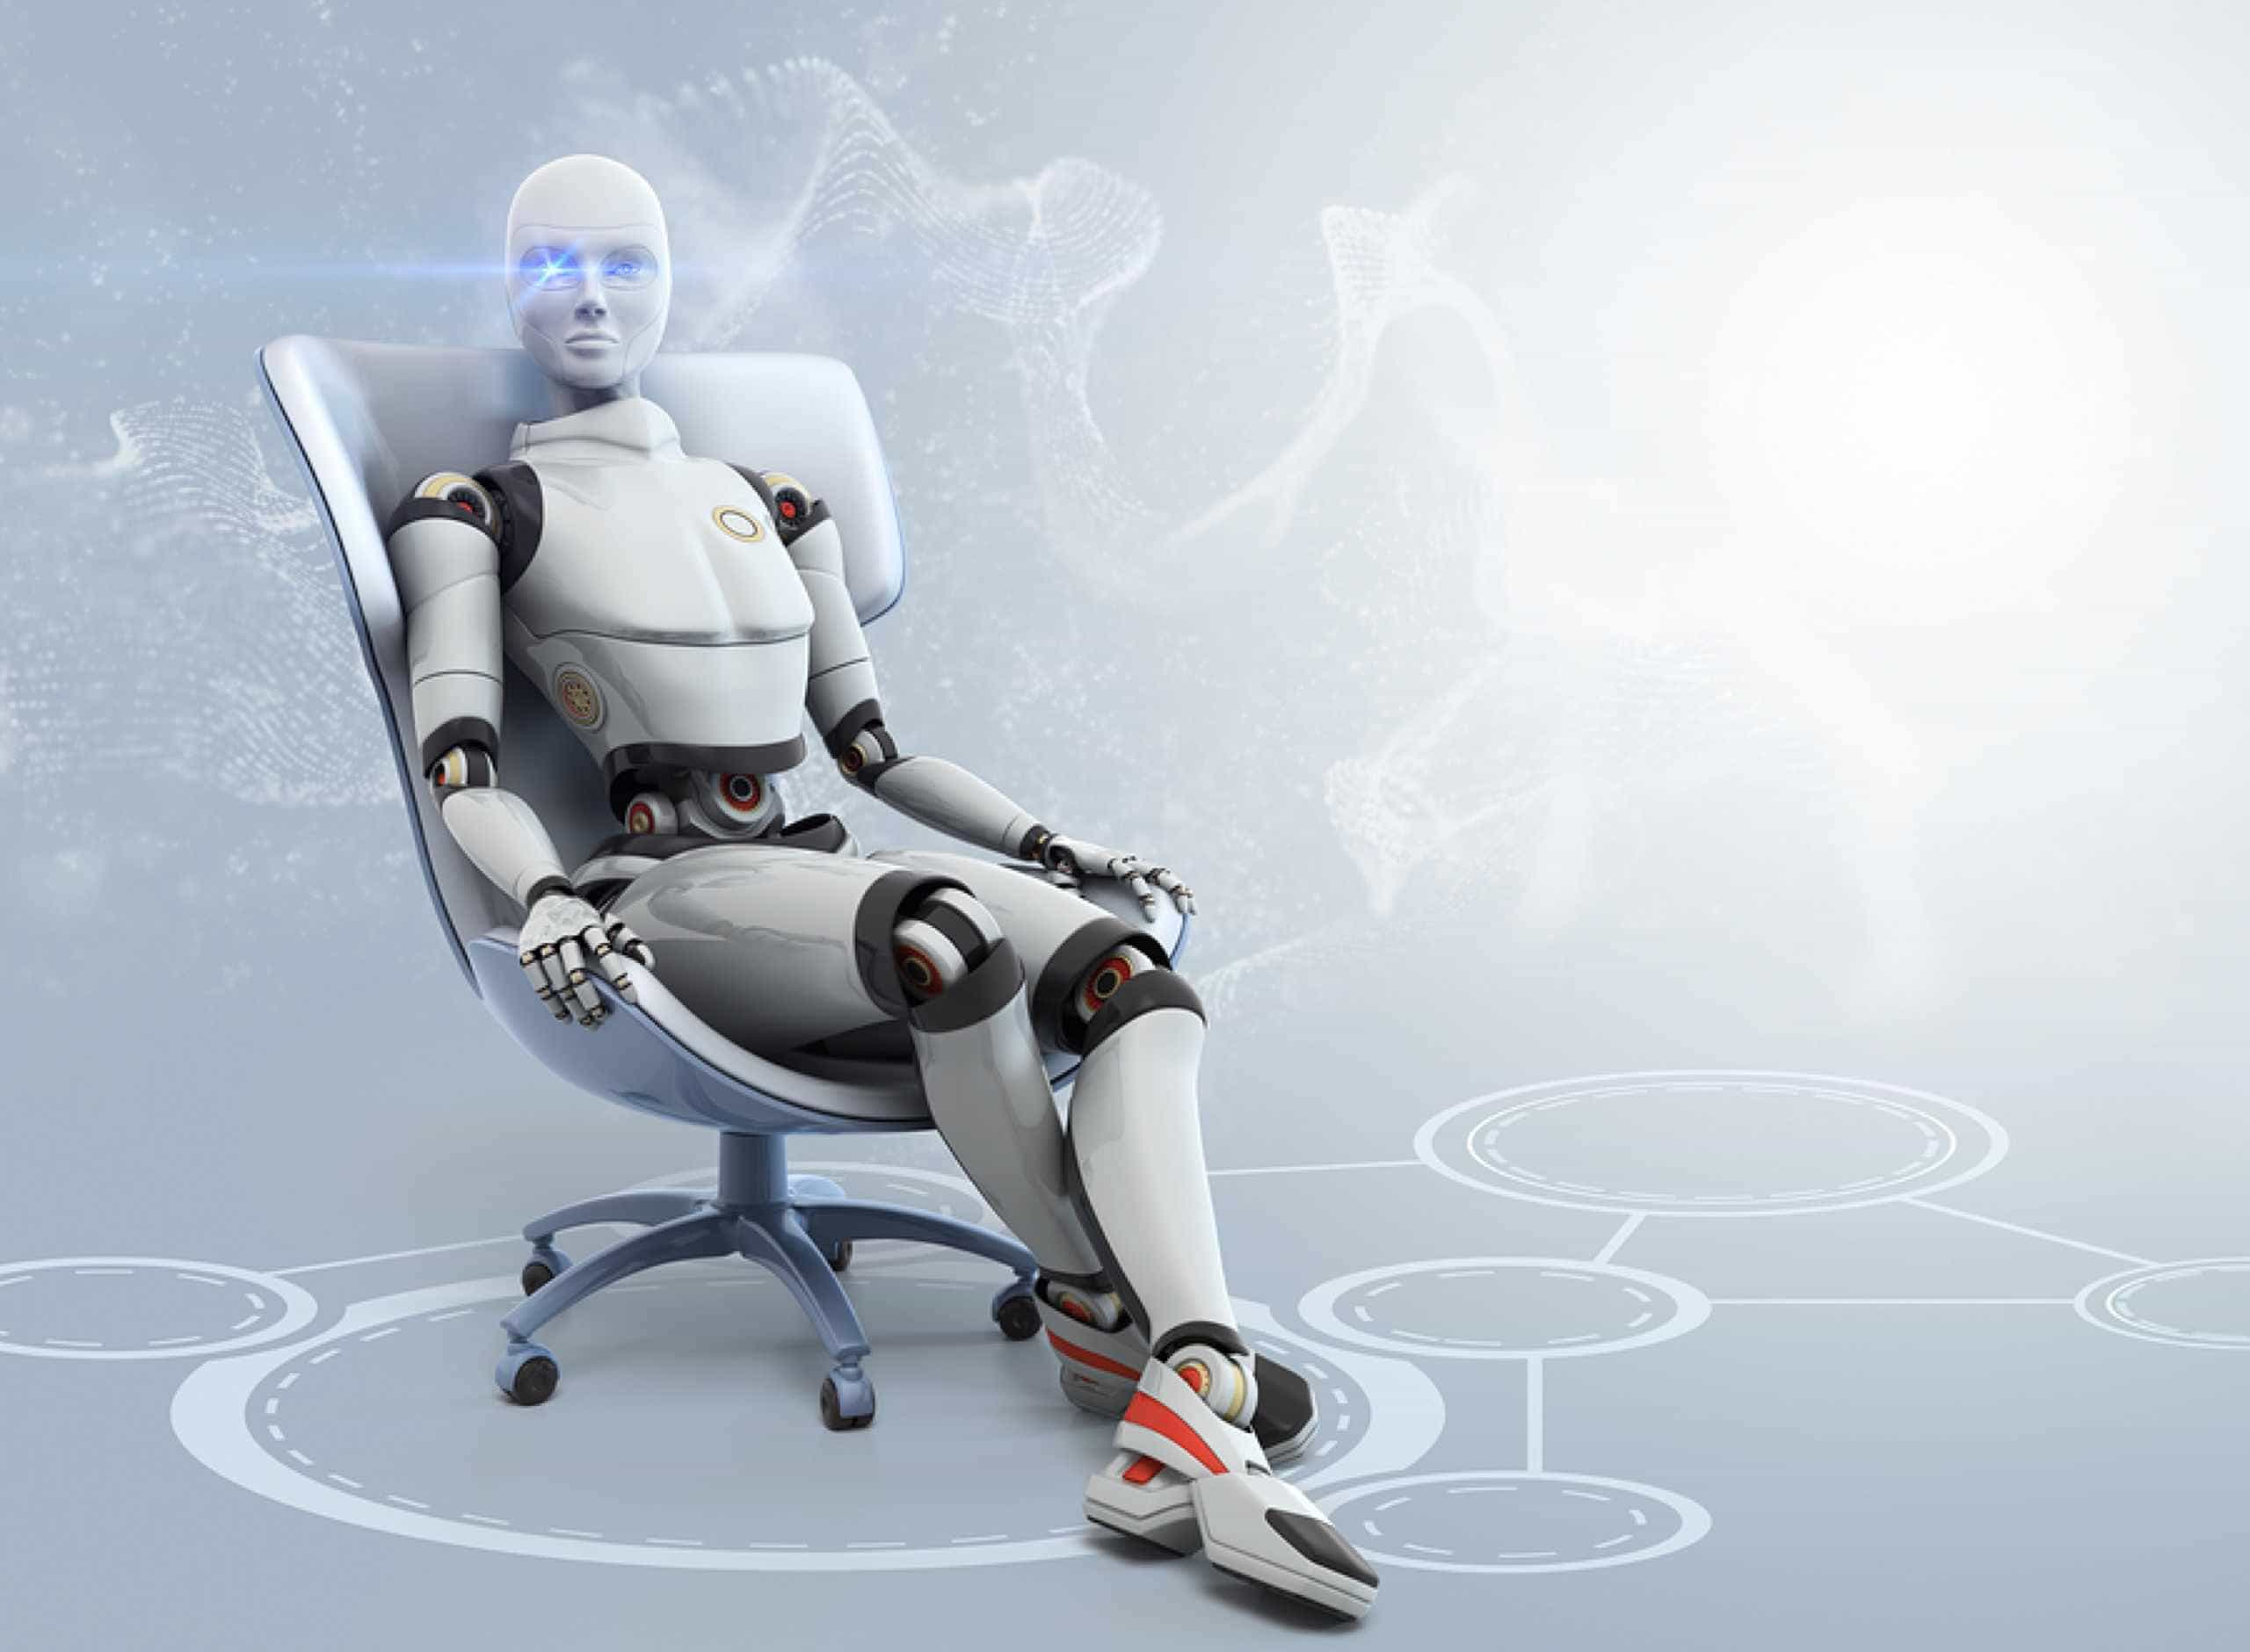 Robot person sitting in an office swivel chair